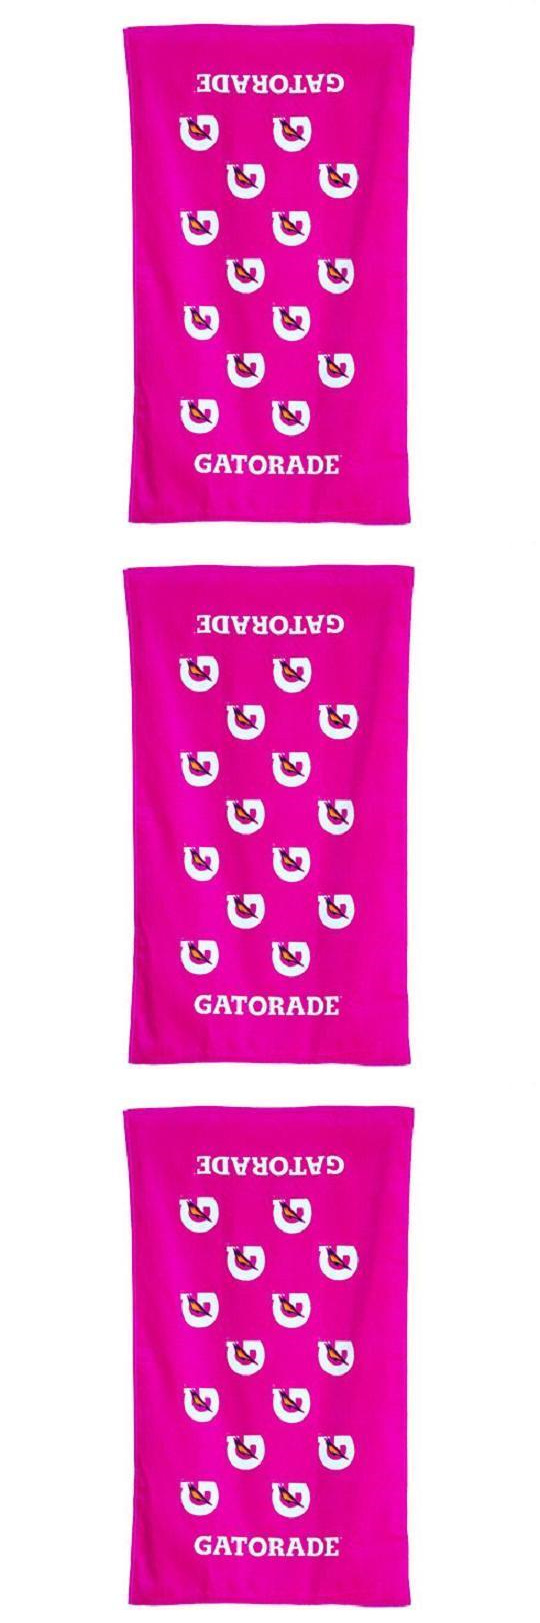 Pink Gatorade Towels April 2017